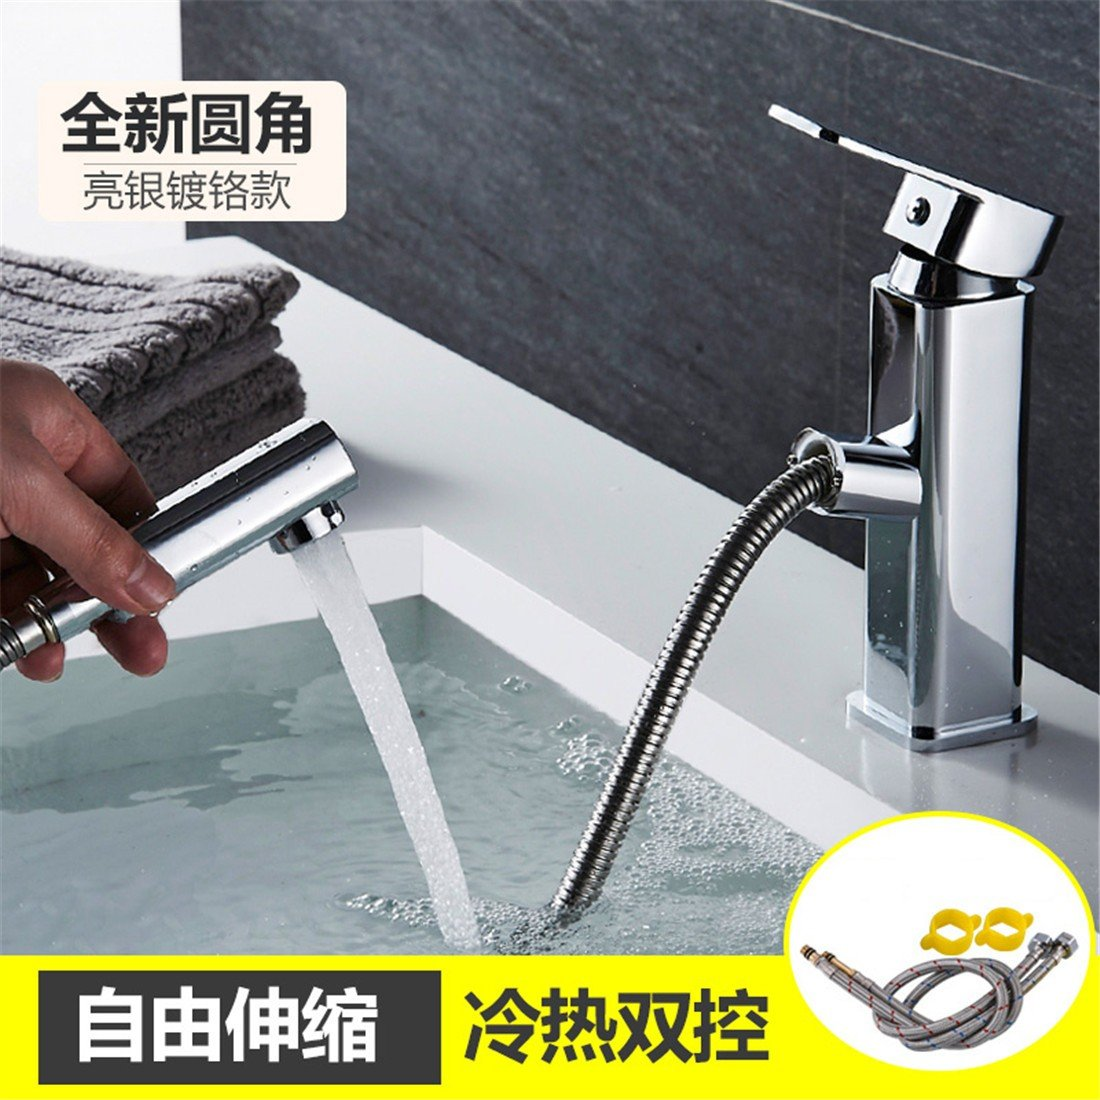 24 LHbox Basin Mixer Tap Bathroom Sink Faucet All copper pull faucet hot and cold basin washhand basin single hole basin mixer Washable head telescopic, full copper round